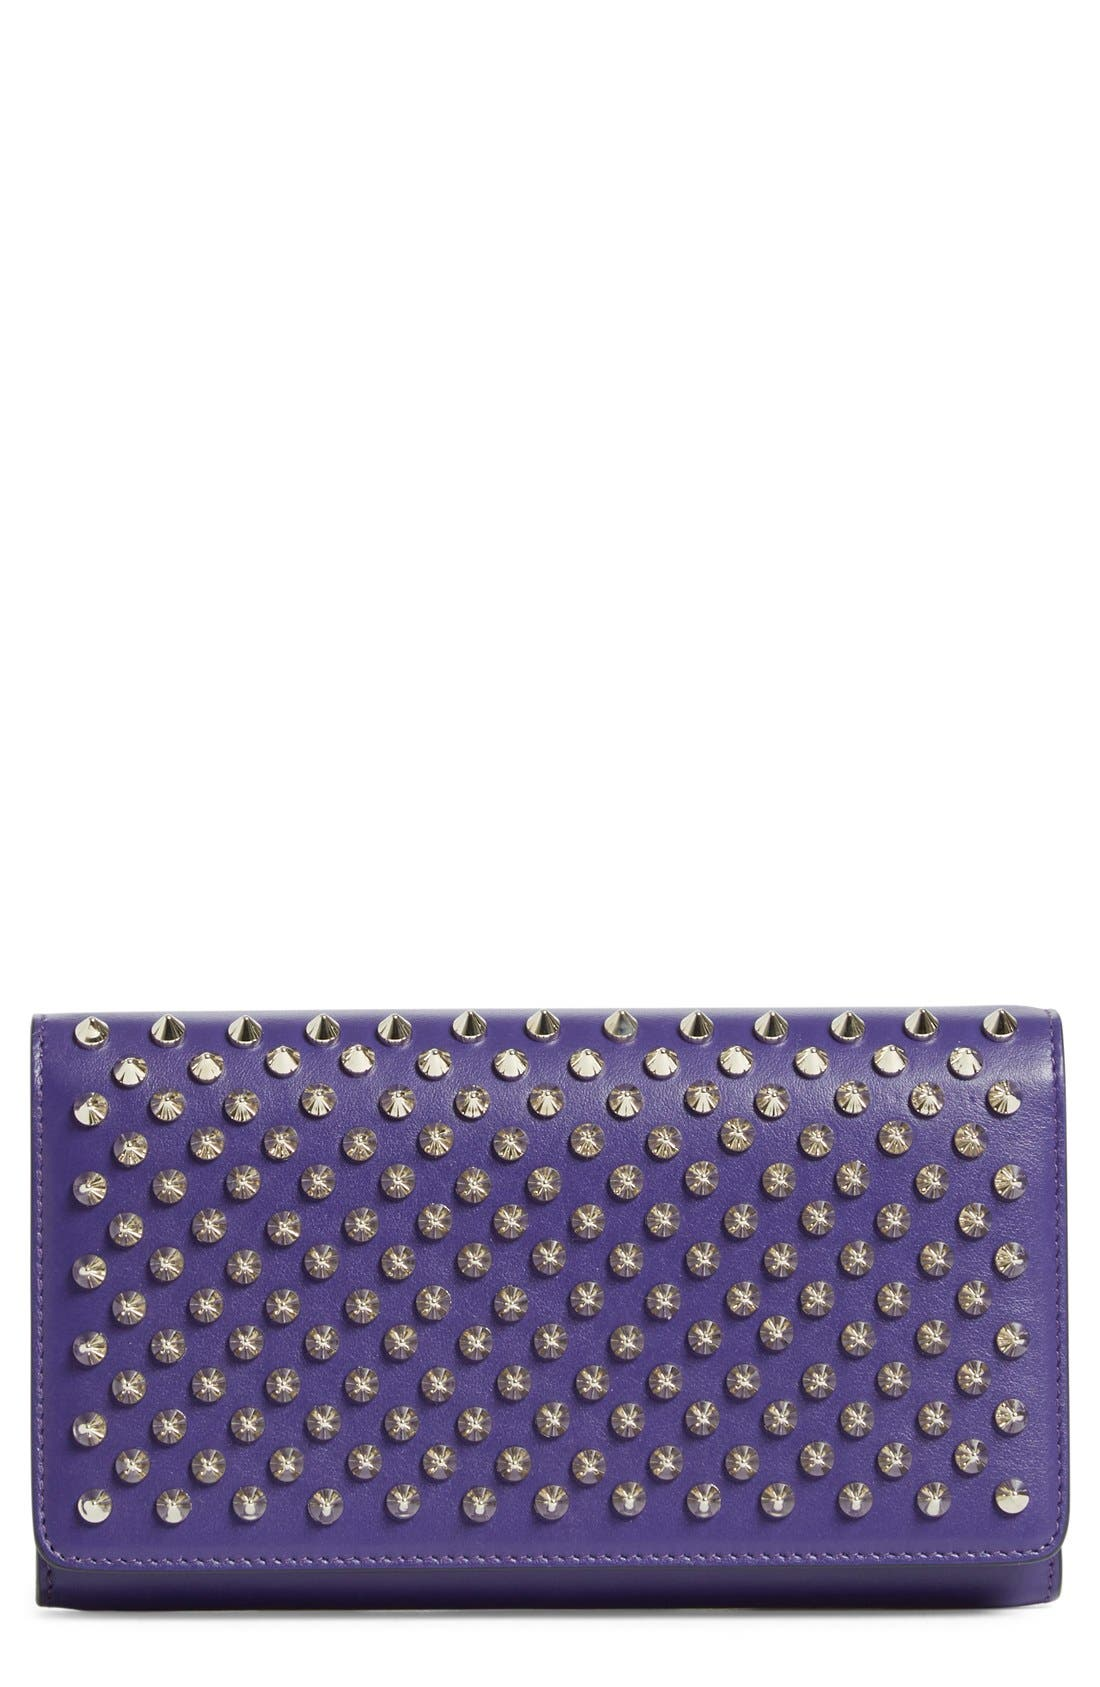 'Macaron' Studded Leather Continental Wallet,                             Main thumbnail 3, color,